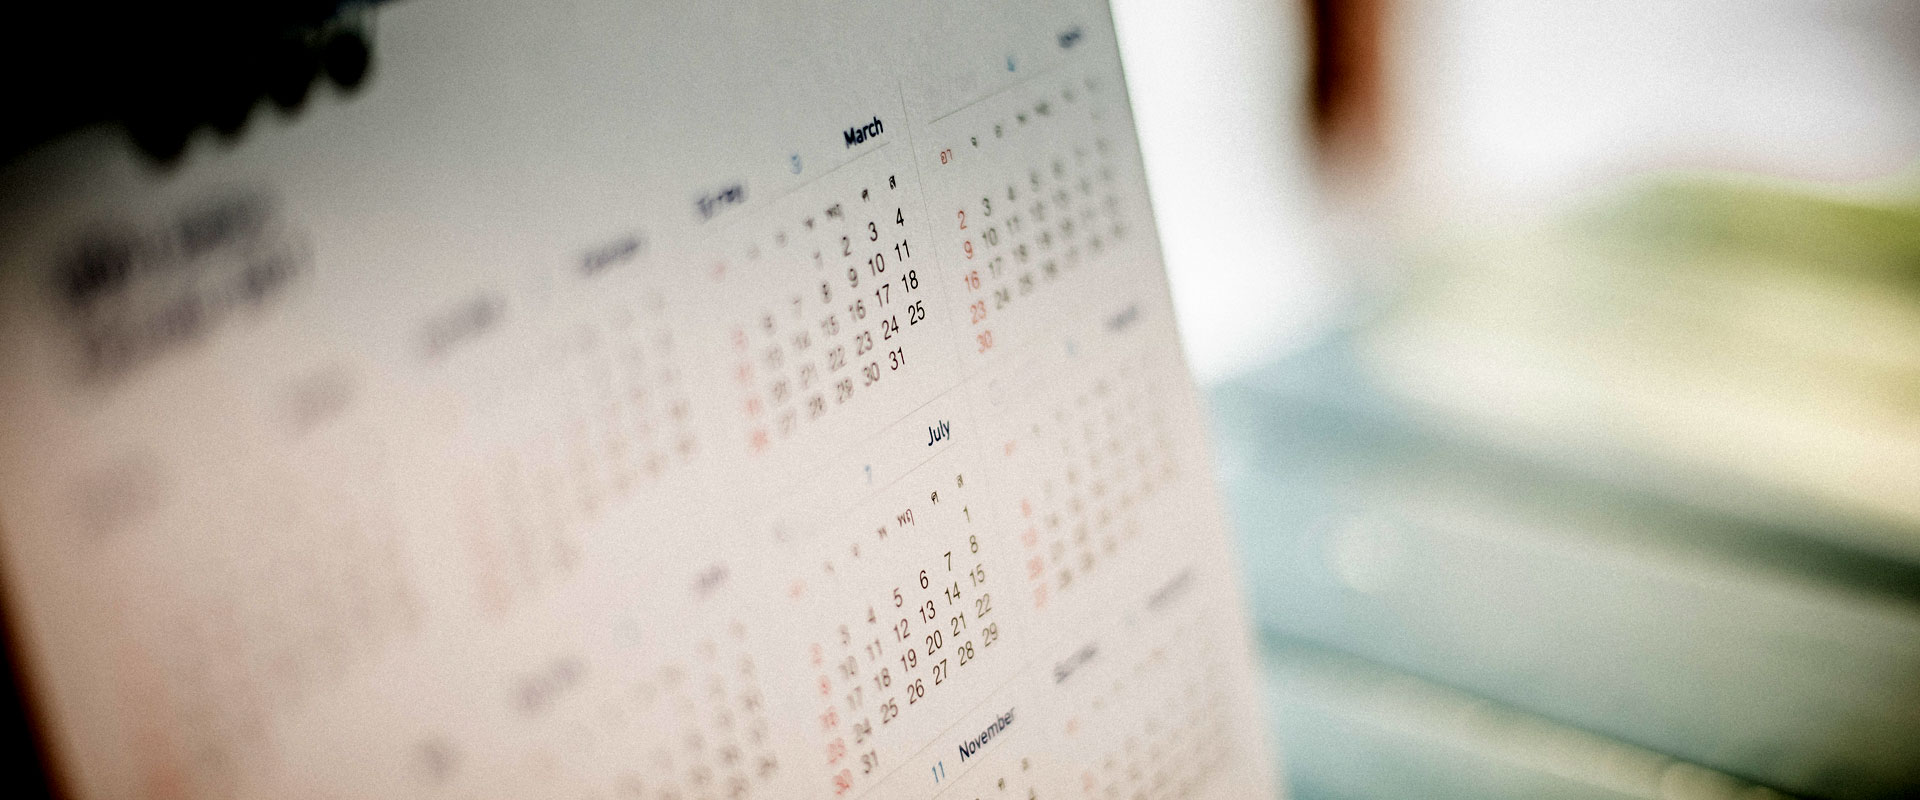 Calendar of Youth Events